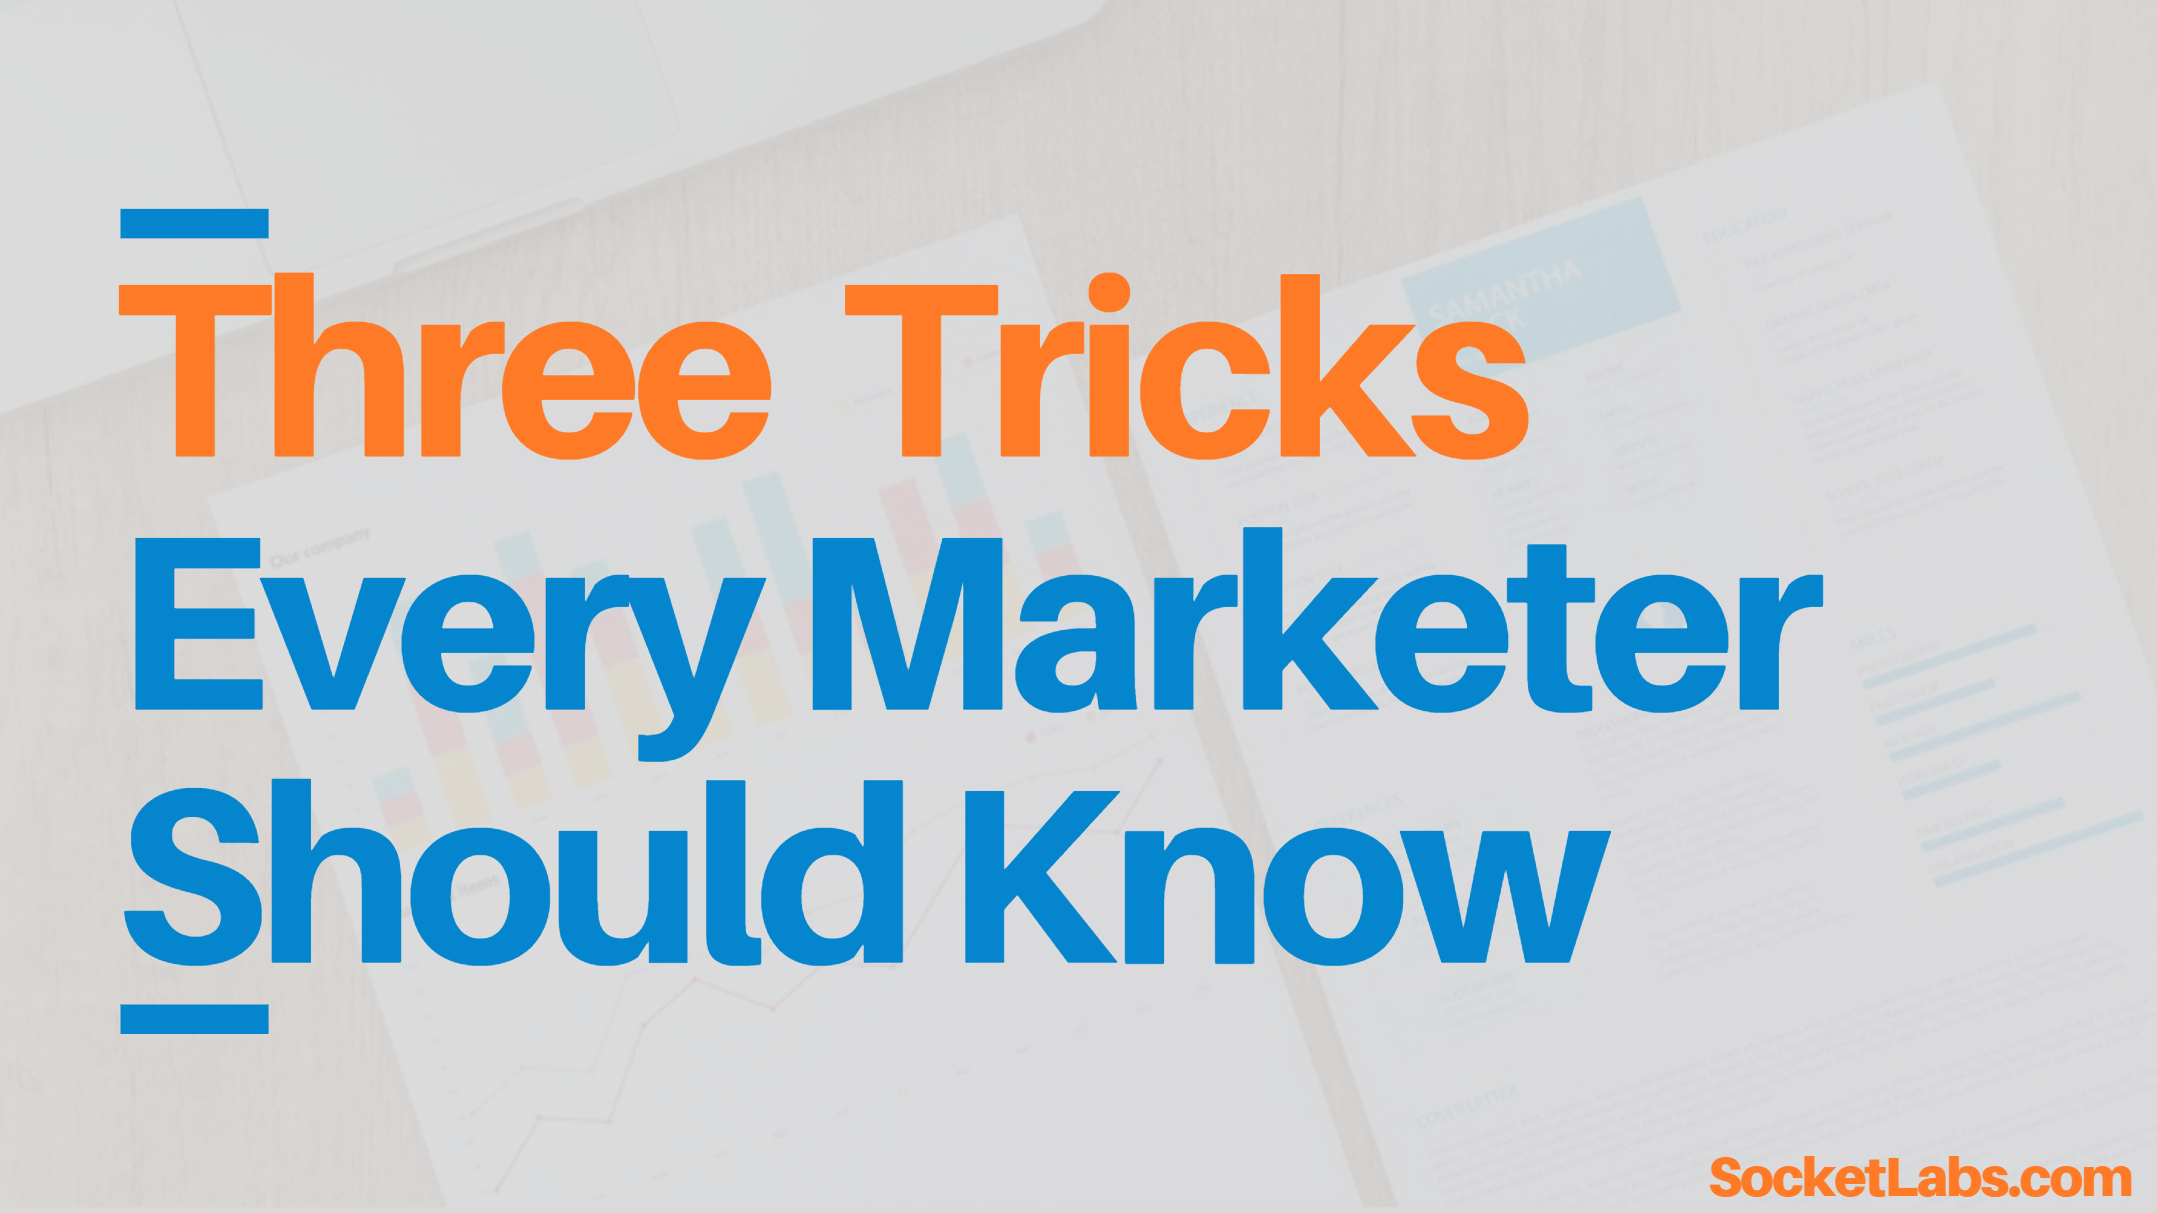 Three Marketing Tricks for the Modern Marketer